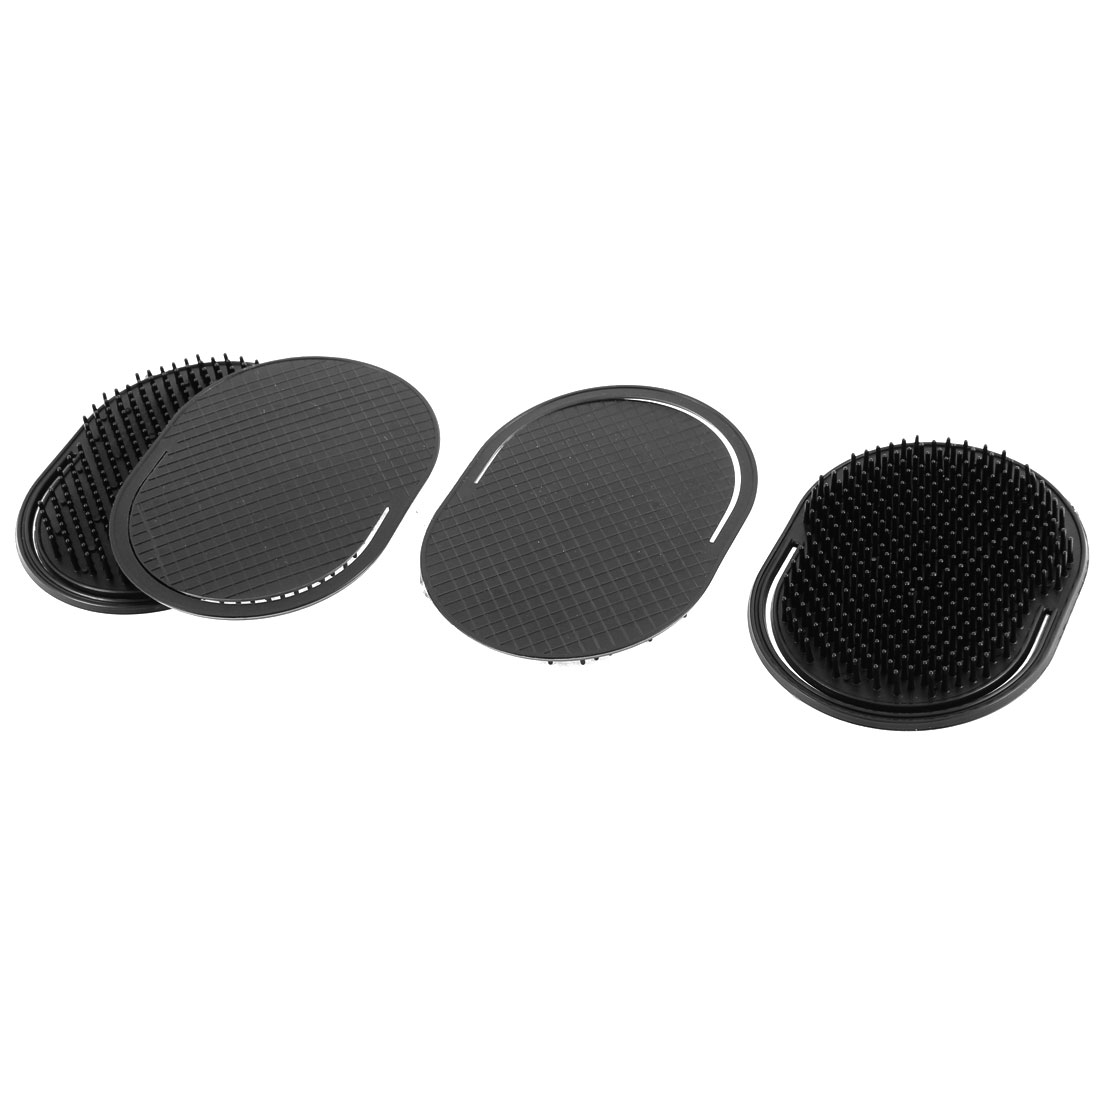 Household Travel Plastic Hair Beard Palm Scalp Massage Brush Black 4 Pcs